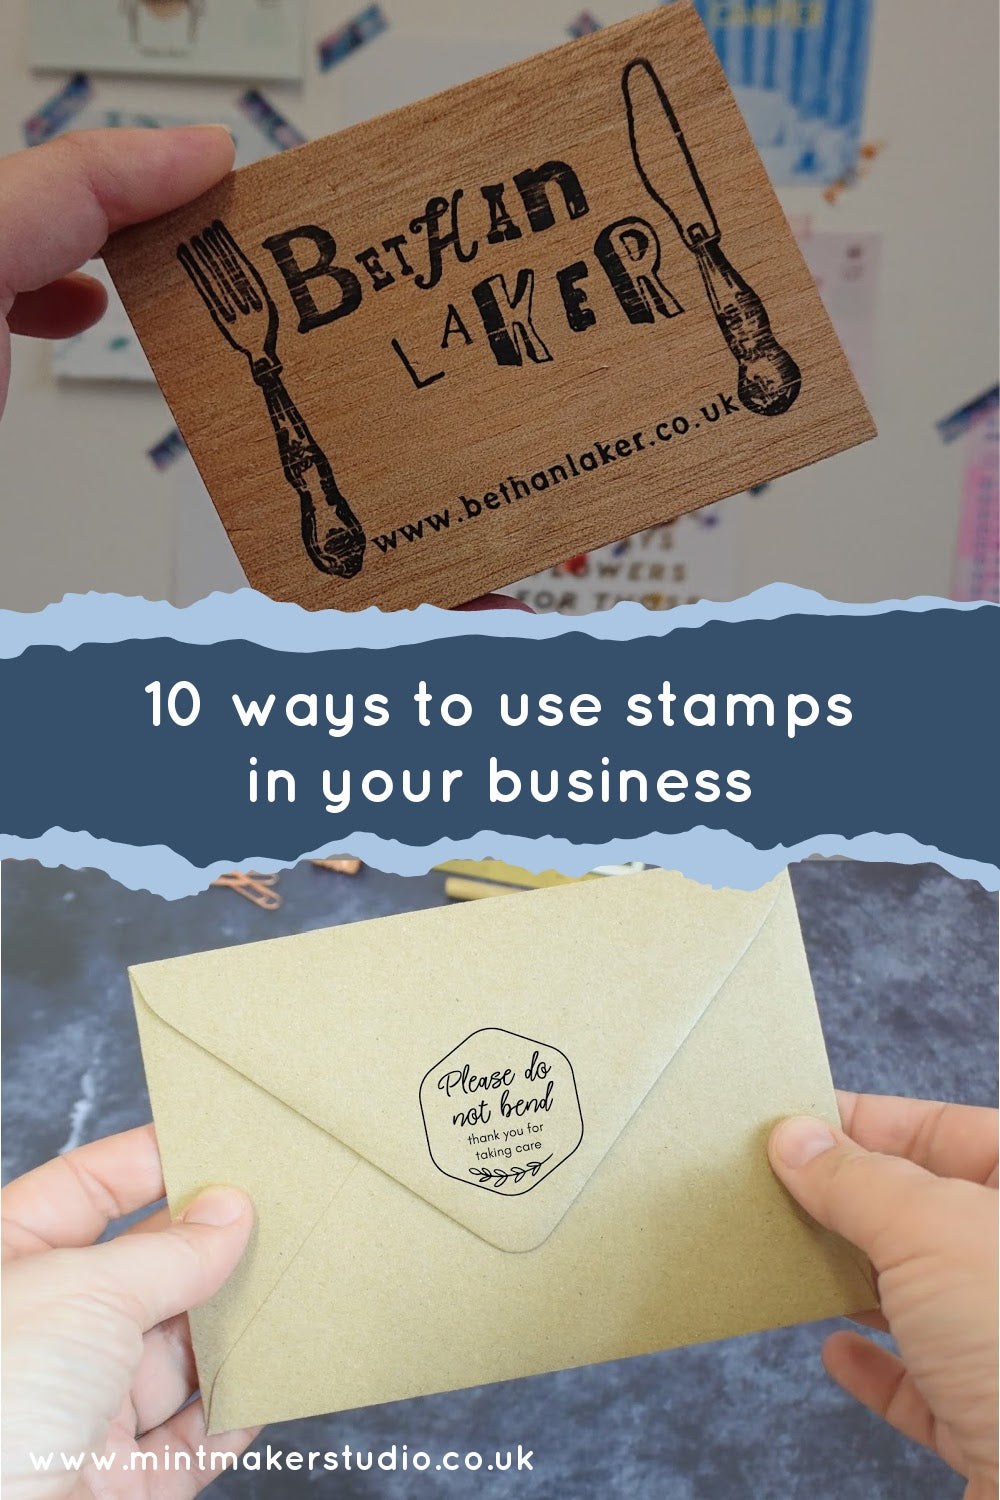 Decorative image of 10 ways to use a stamp in your business